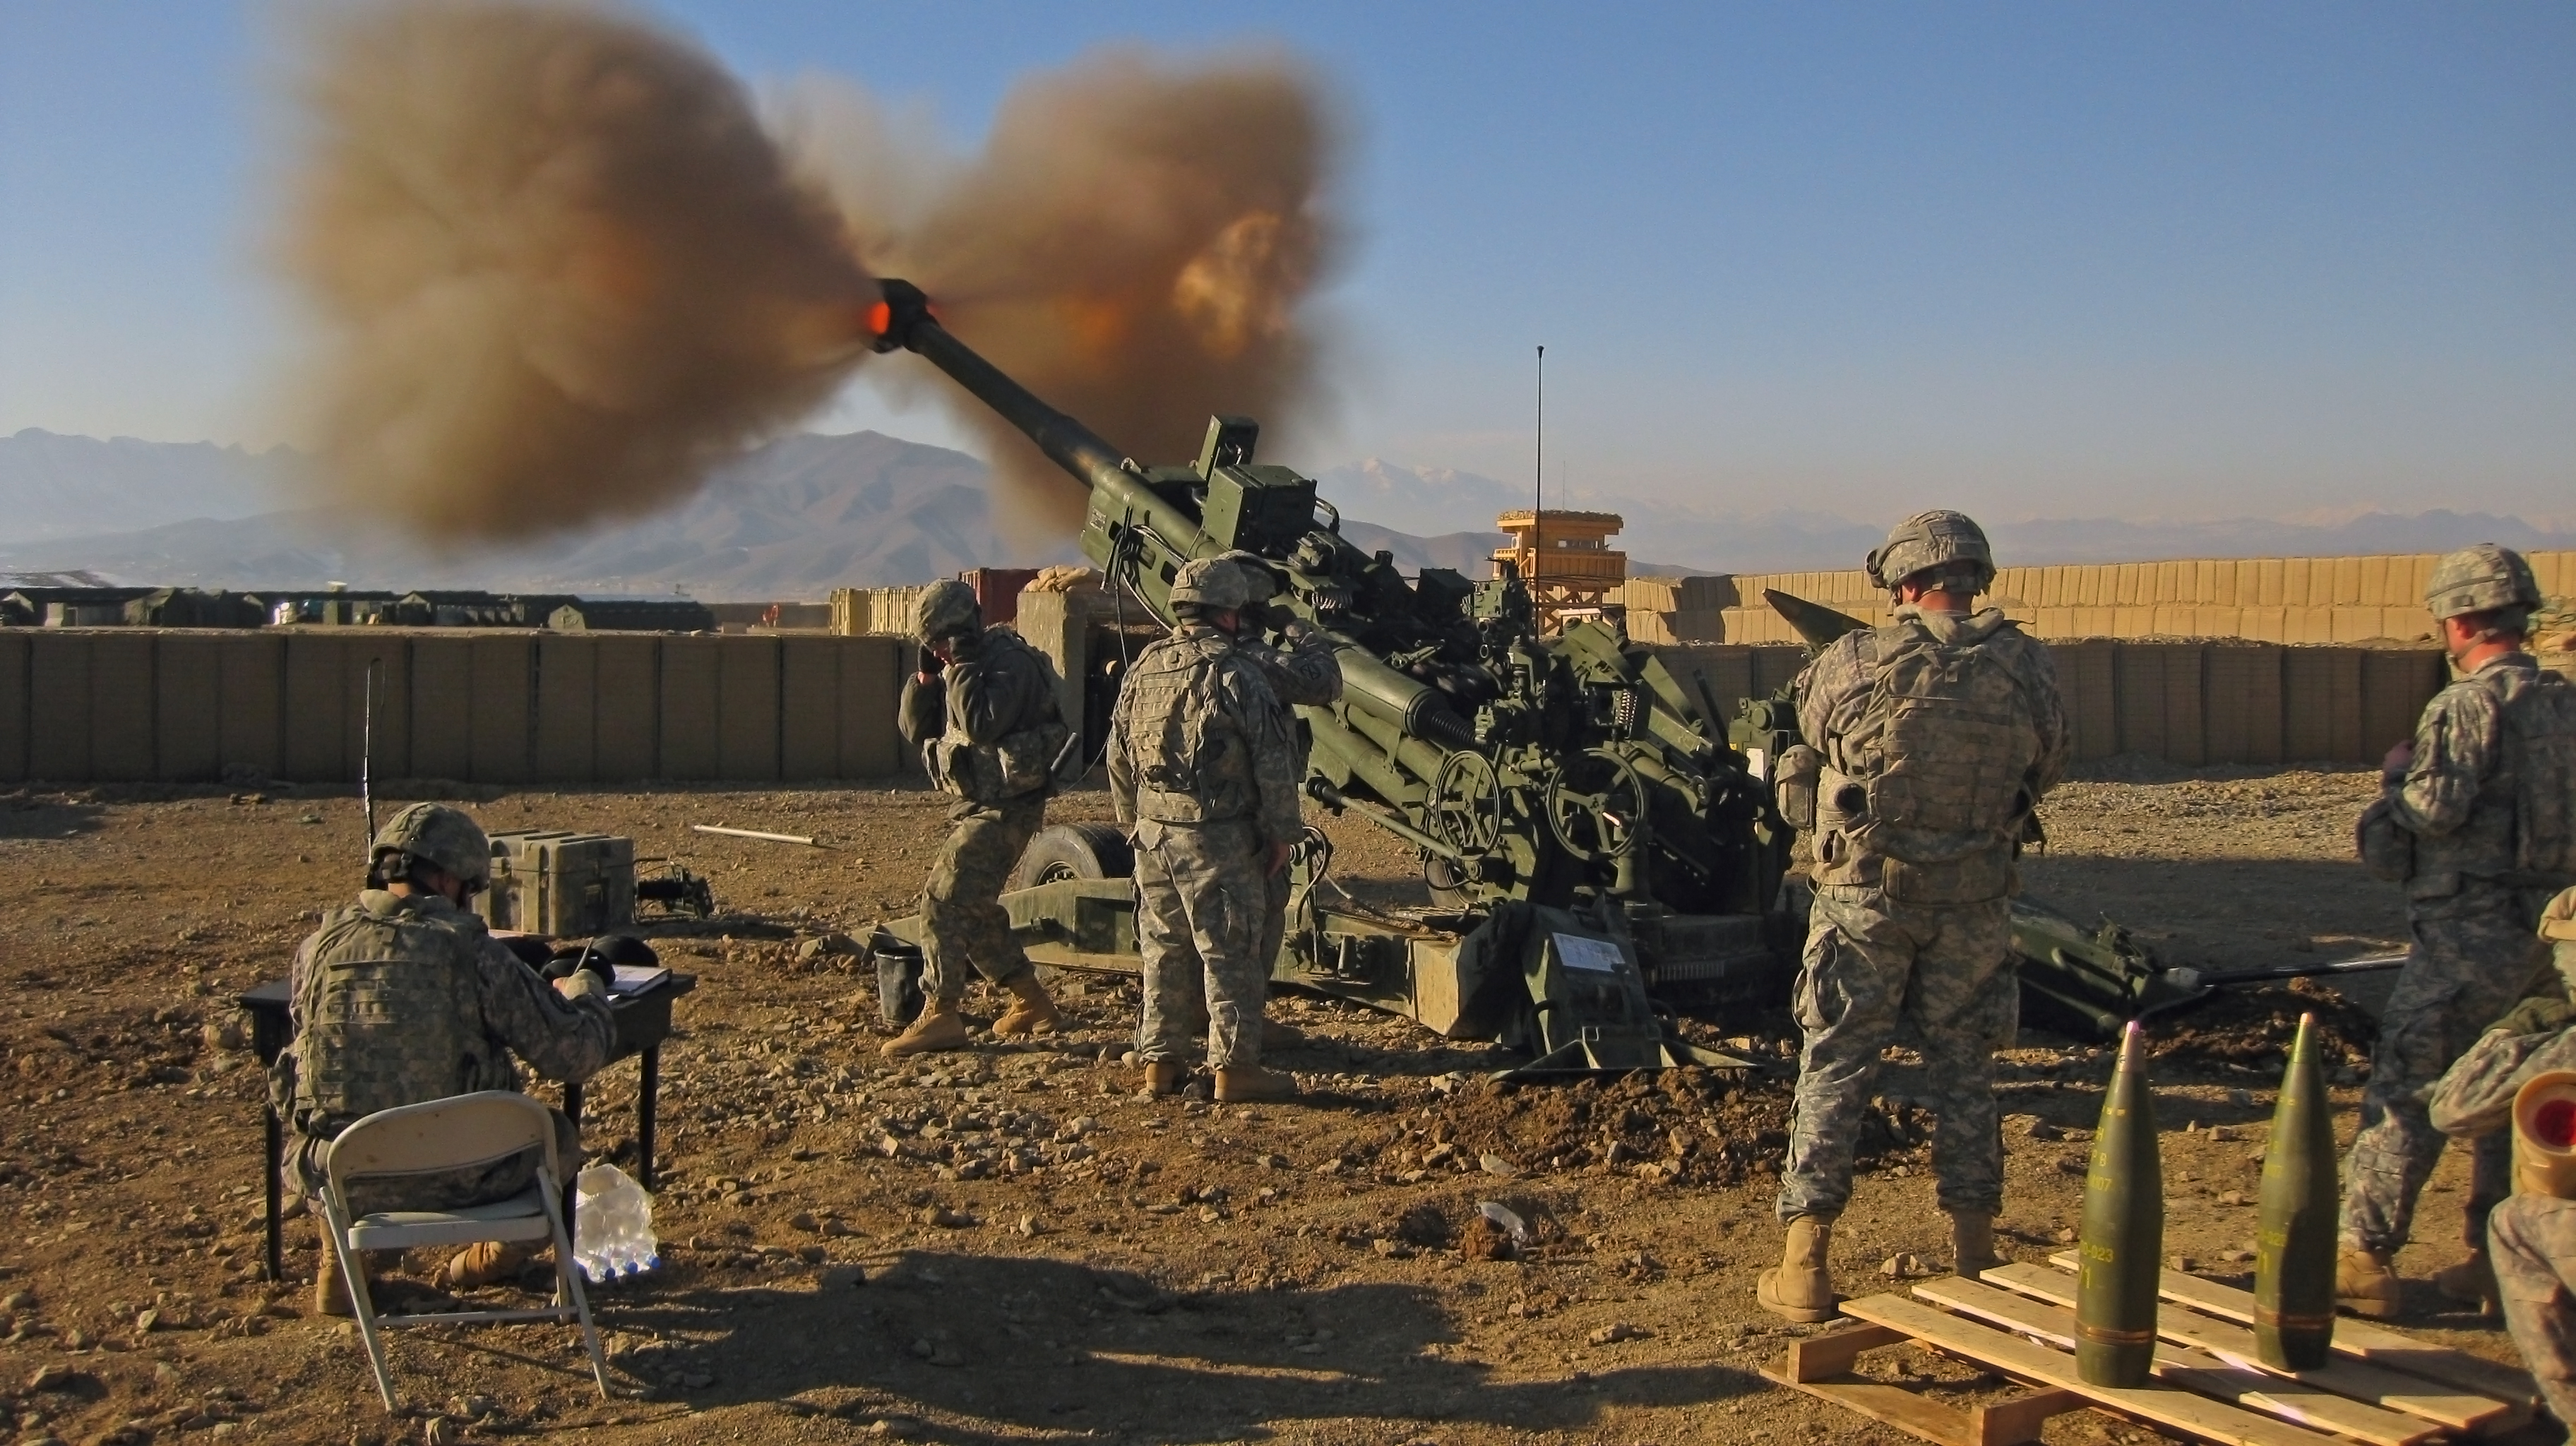 https://upload.wikimedia.org/wikipedia/commons/1/1b/M777_Light_Towed_Howitzer_1.jpg